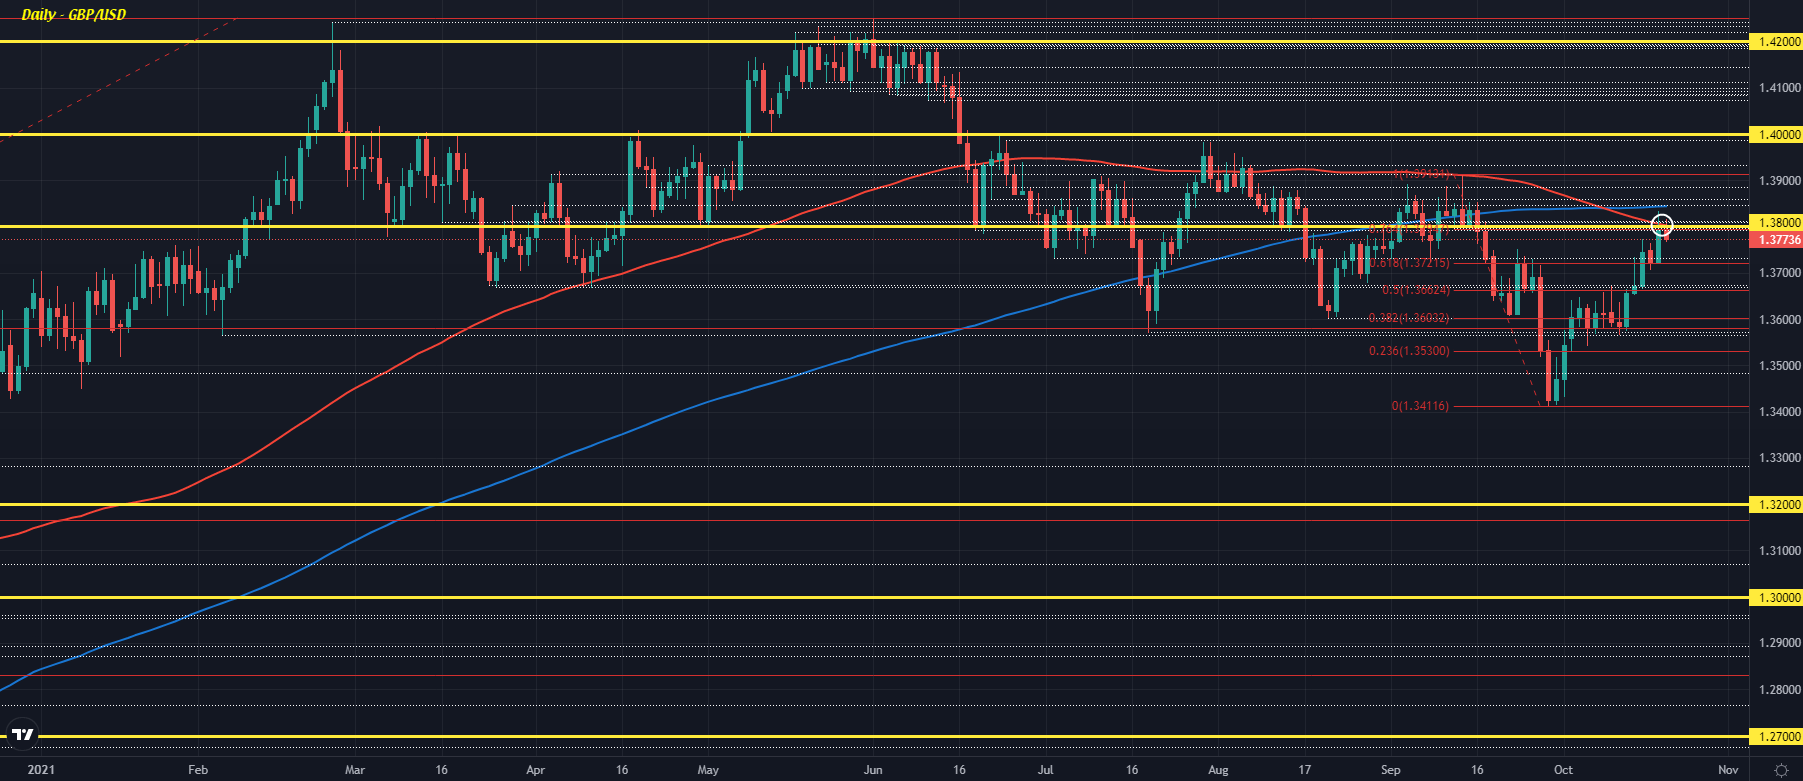 Cable buyers facing stiff opposition at key resistance hurdle